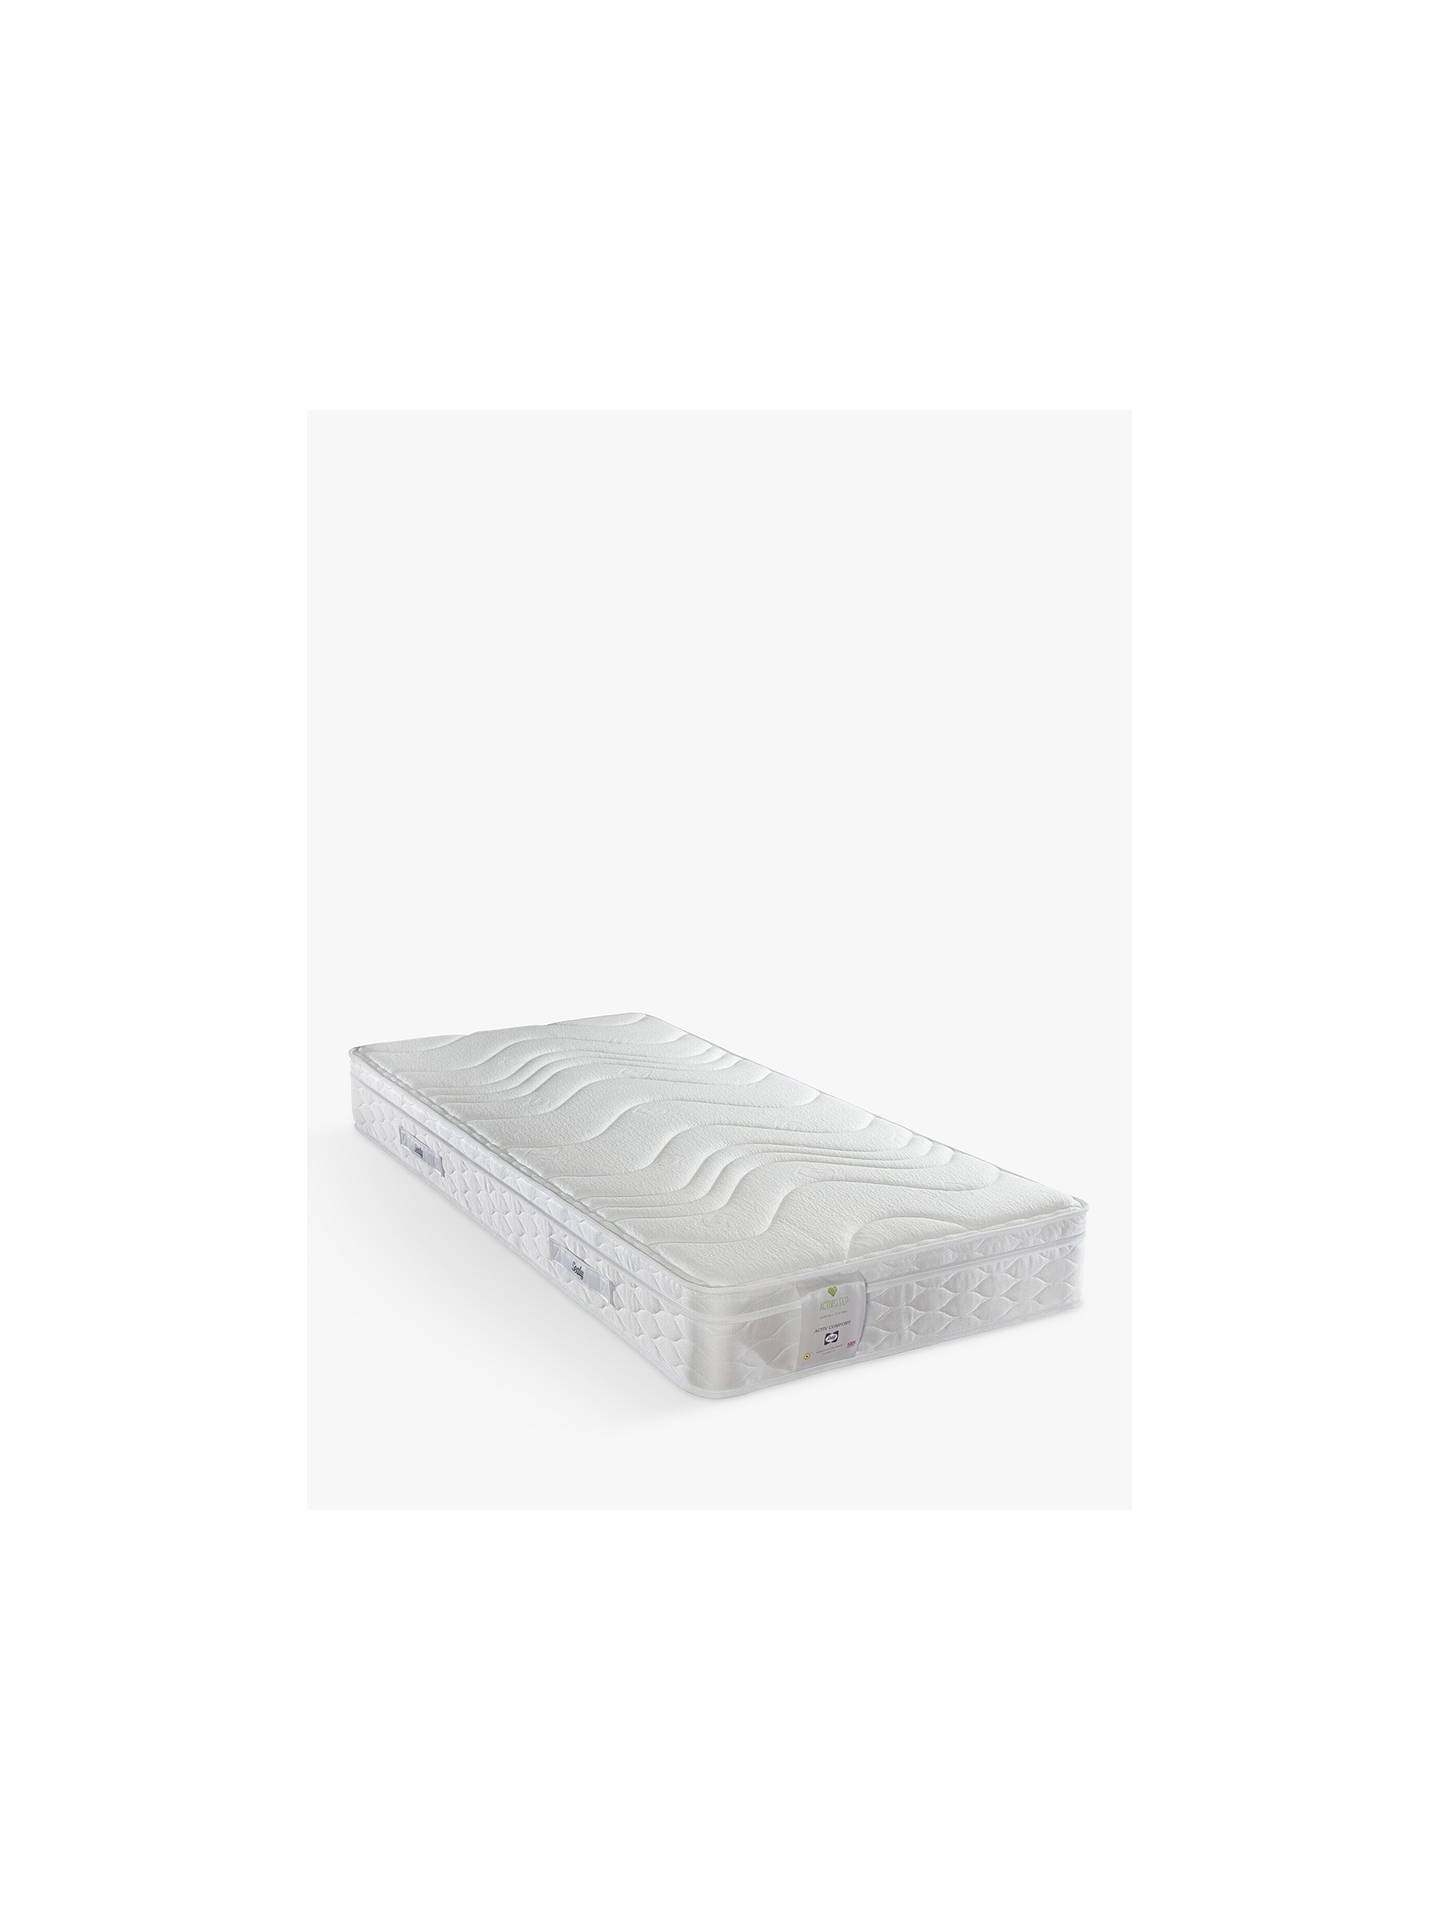 BuySealy Activsleep Comfort Mattress, Medium, Single Online at johnlewis.com